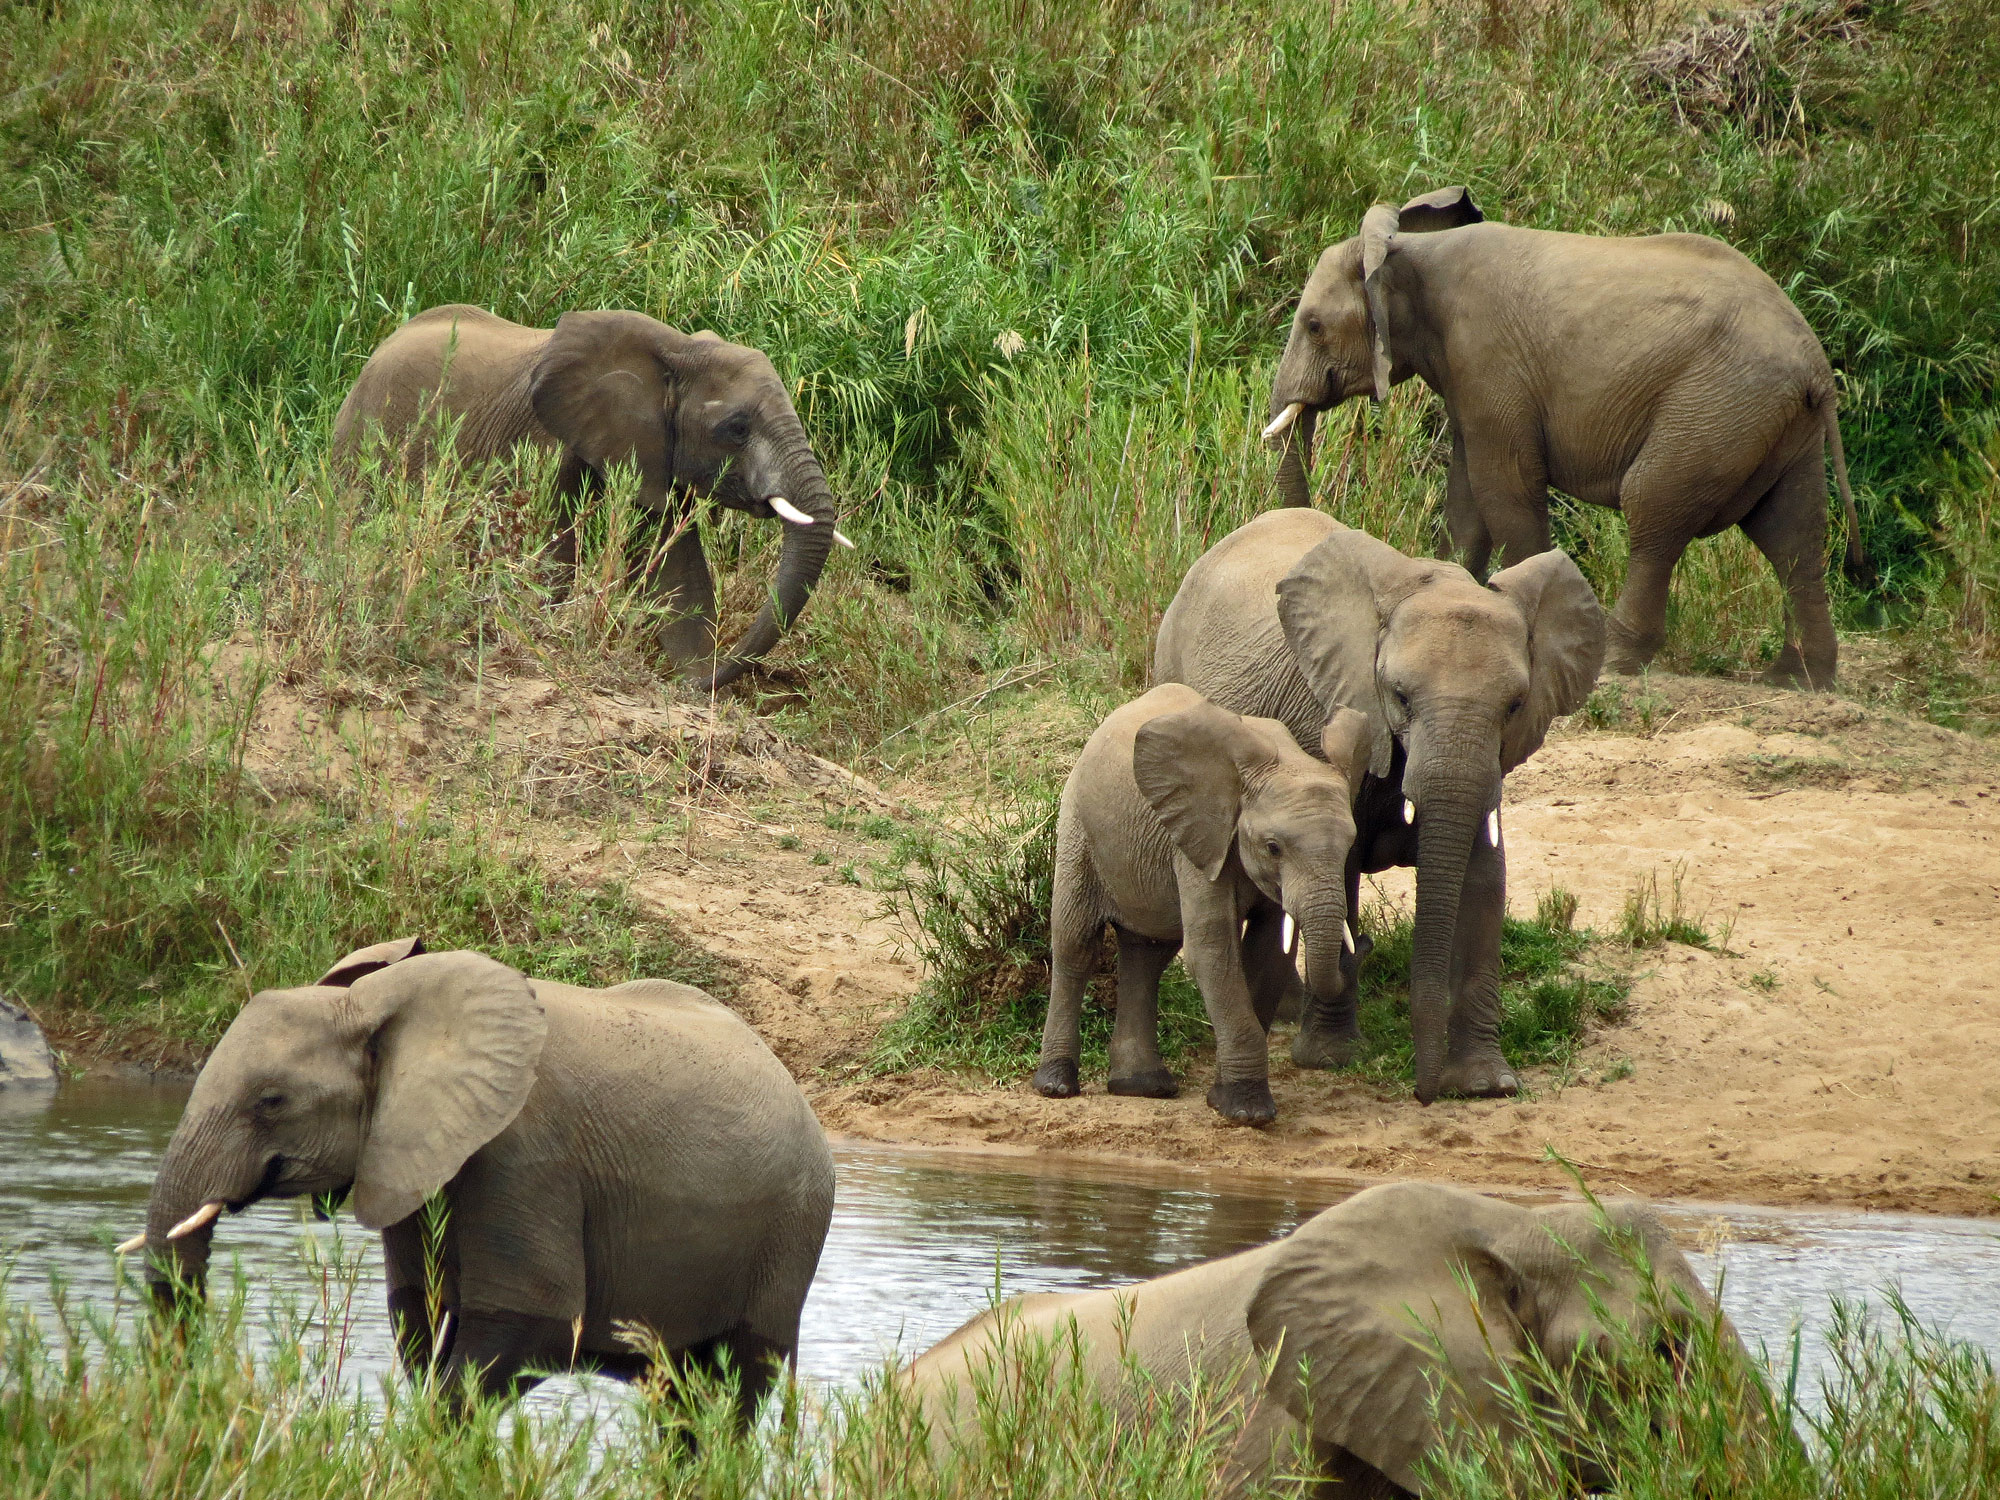 Elephants Kruger Park South Africa